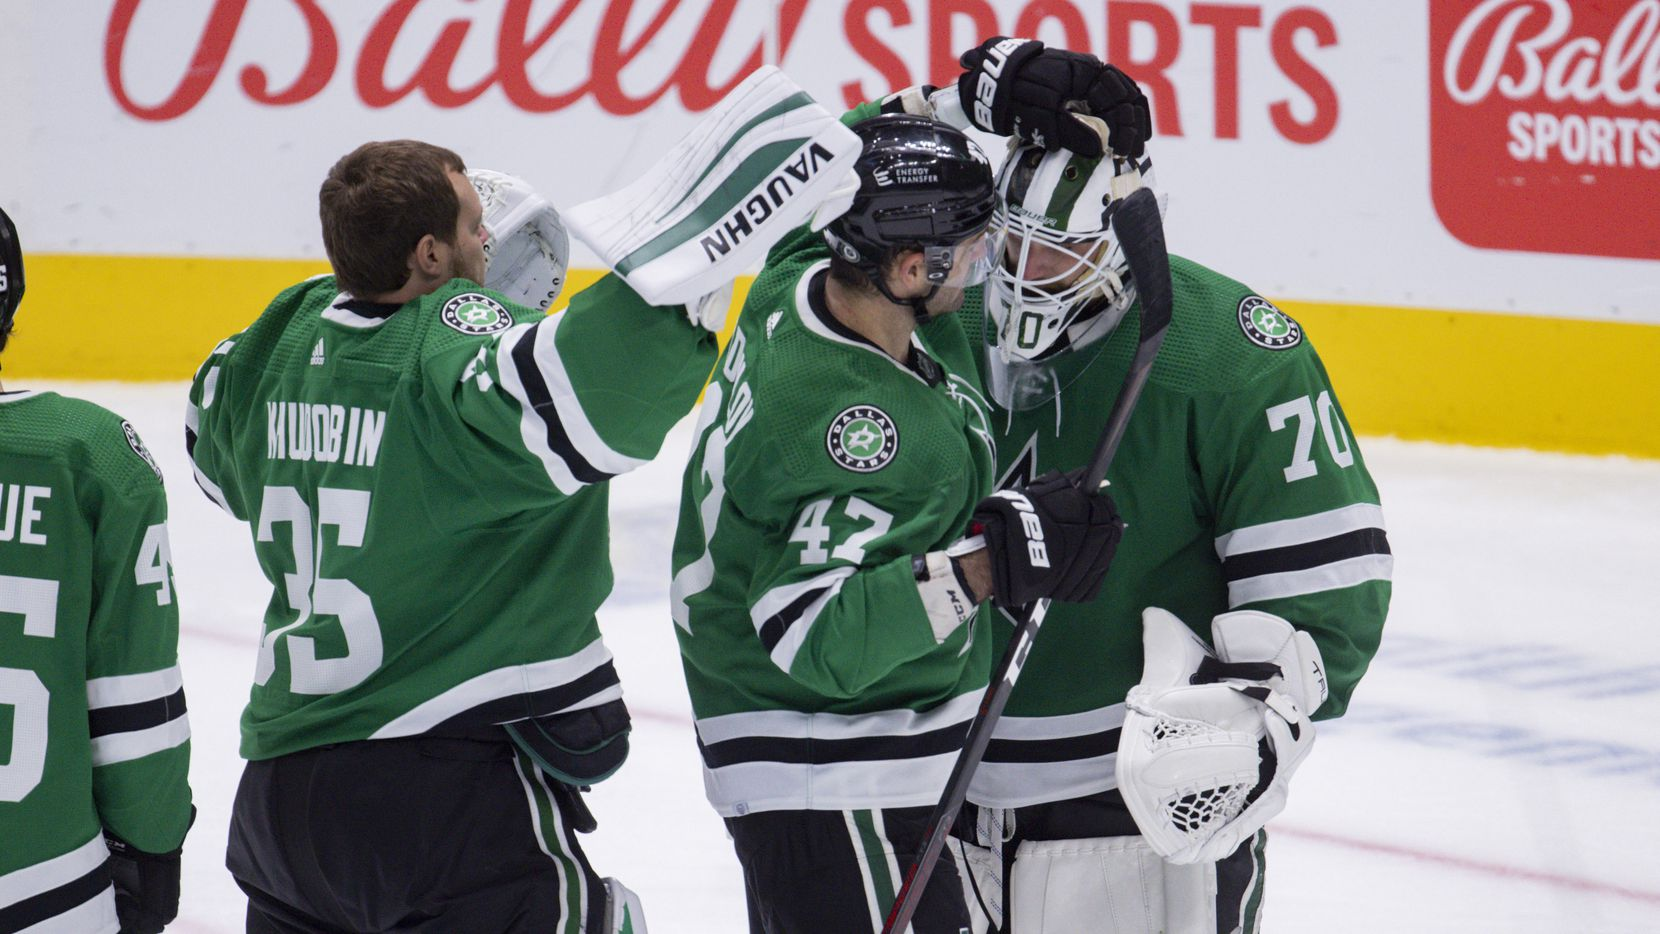 Dallas Stars right wing Alexander Radulov (47) celebrates with Dallas Stars goaltender Braden Holtby (70) after their preseason game win against St. Louis Blues on Tuesday, Oct. 5, 2021, at American Airlines Center in Dallas.